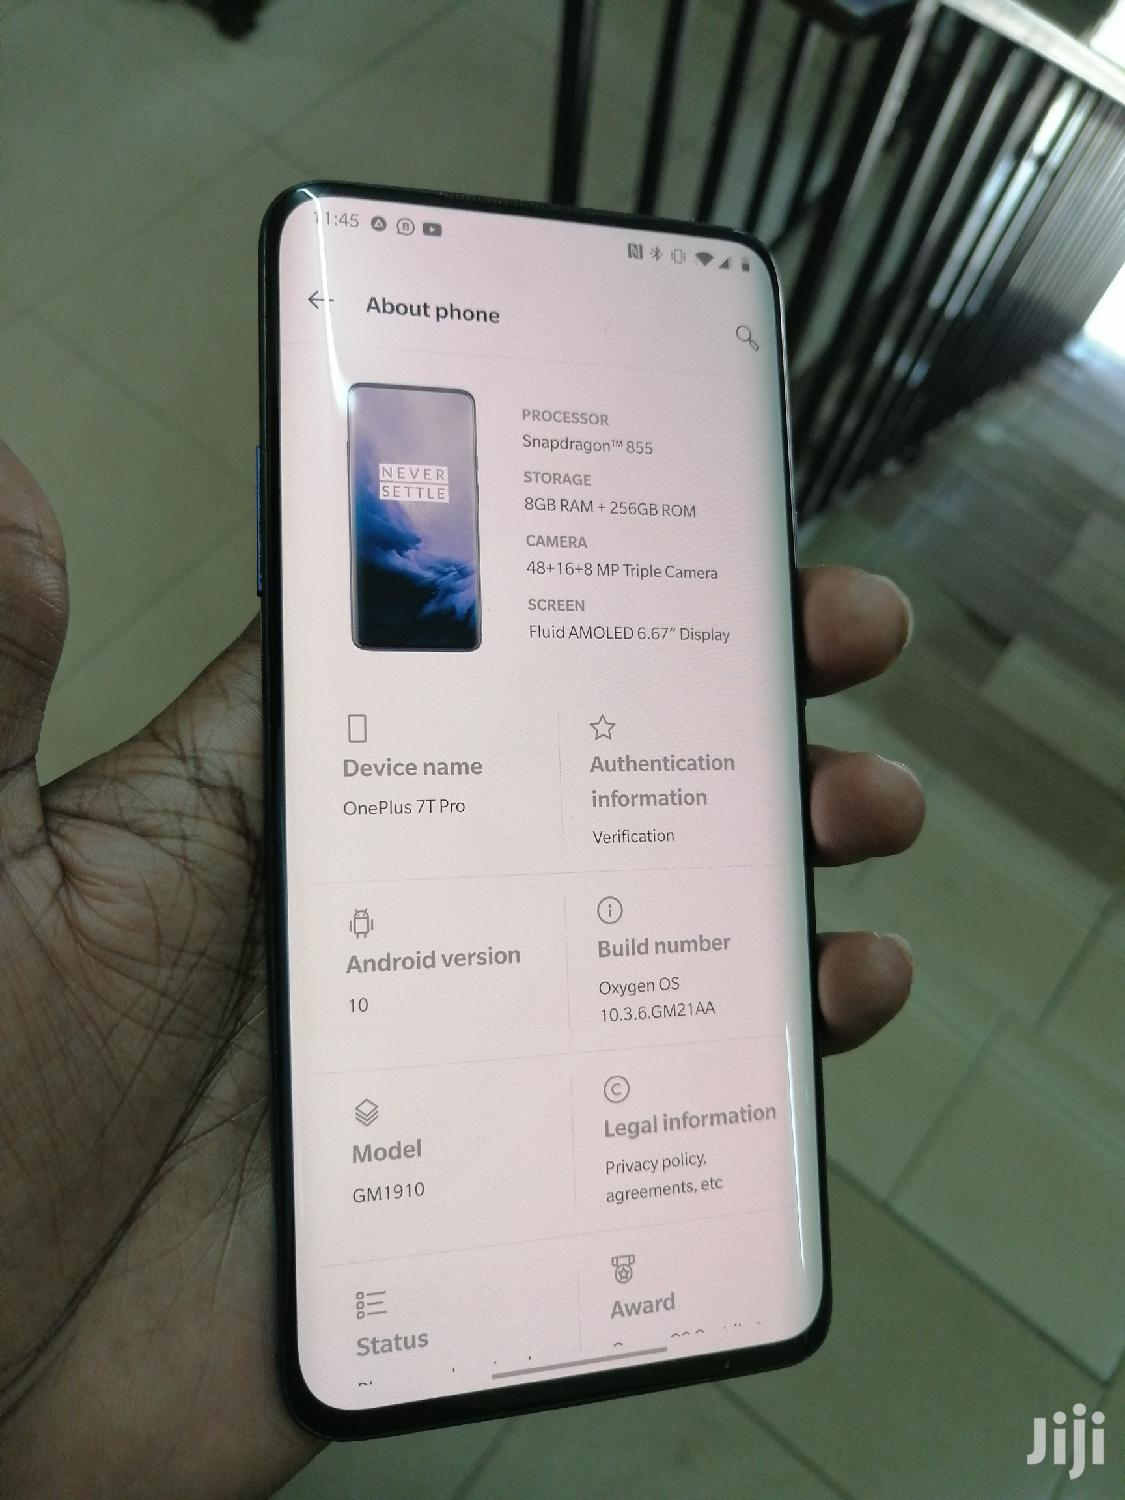 Archive: OnePlus 7T Pro 256 GB Blue